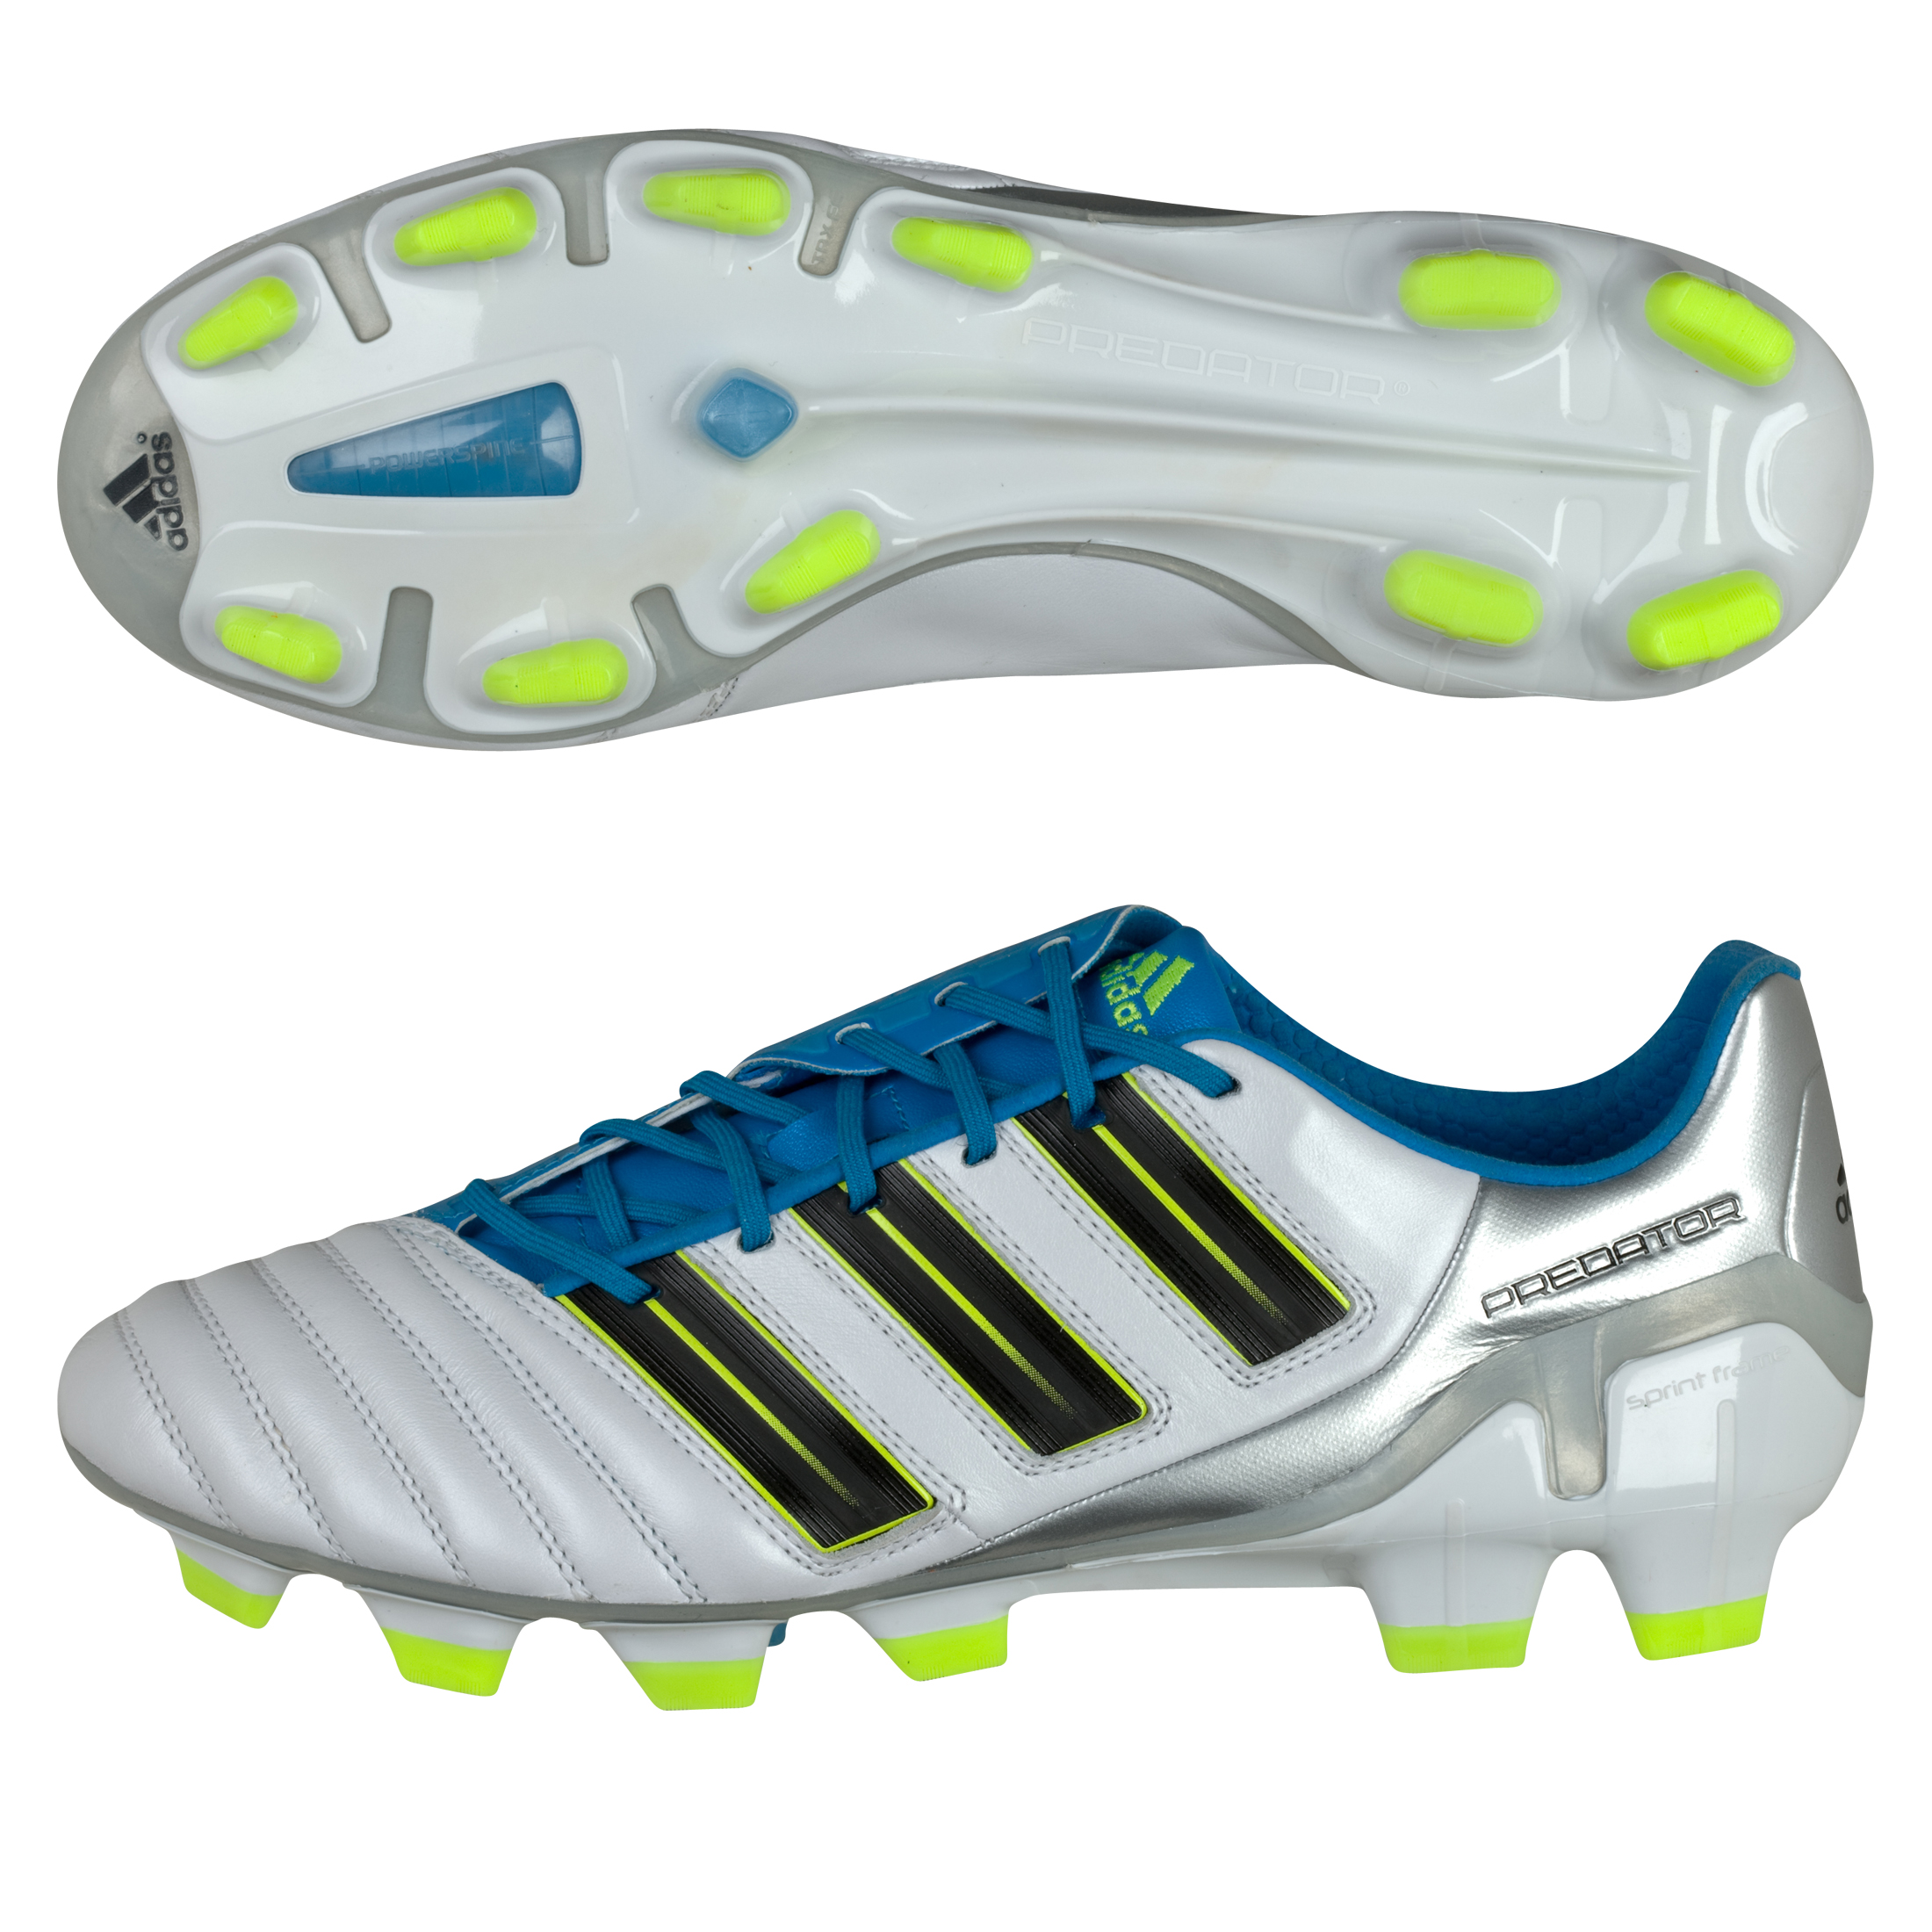 adidas adipower Predator TRX Firm Ground Football Boots - White/Black/Metallic Blue